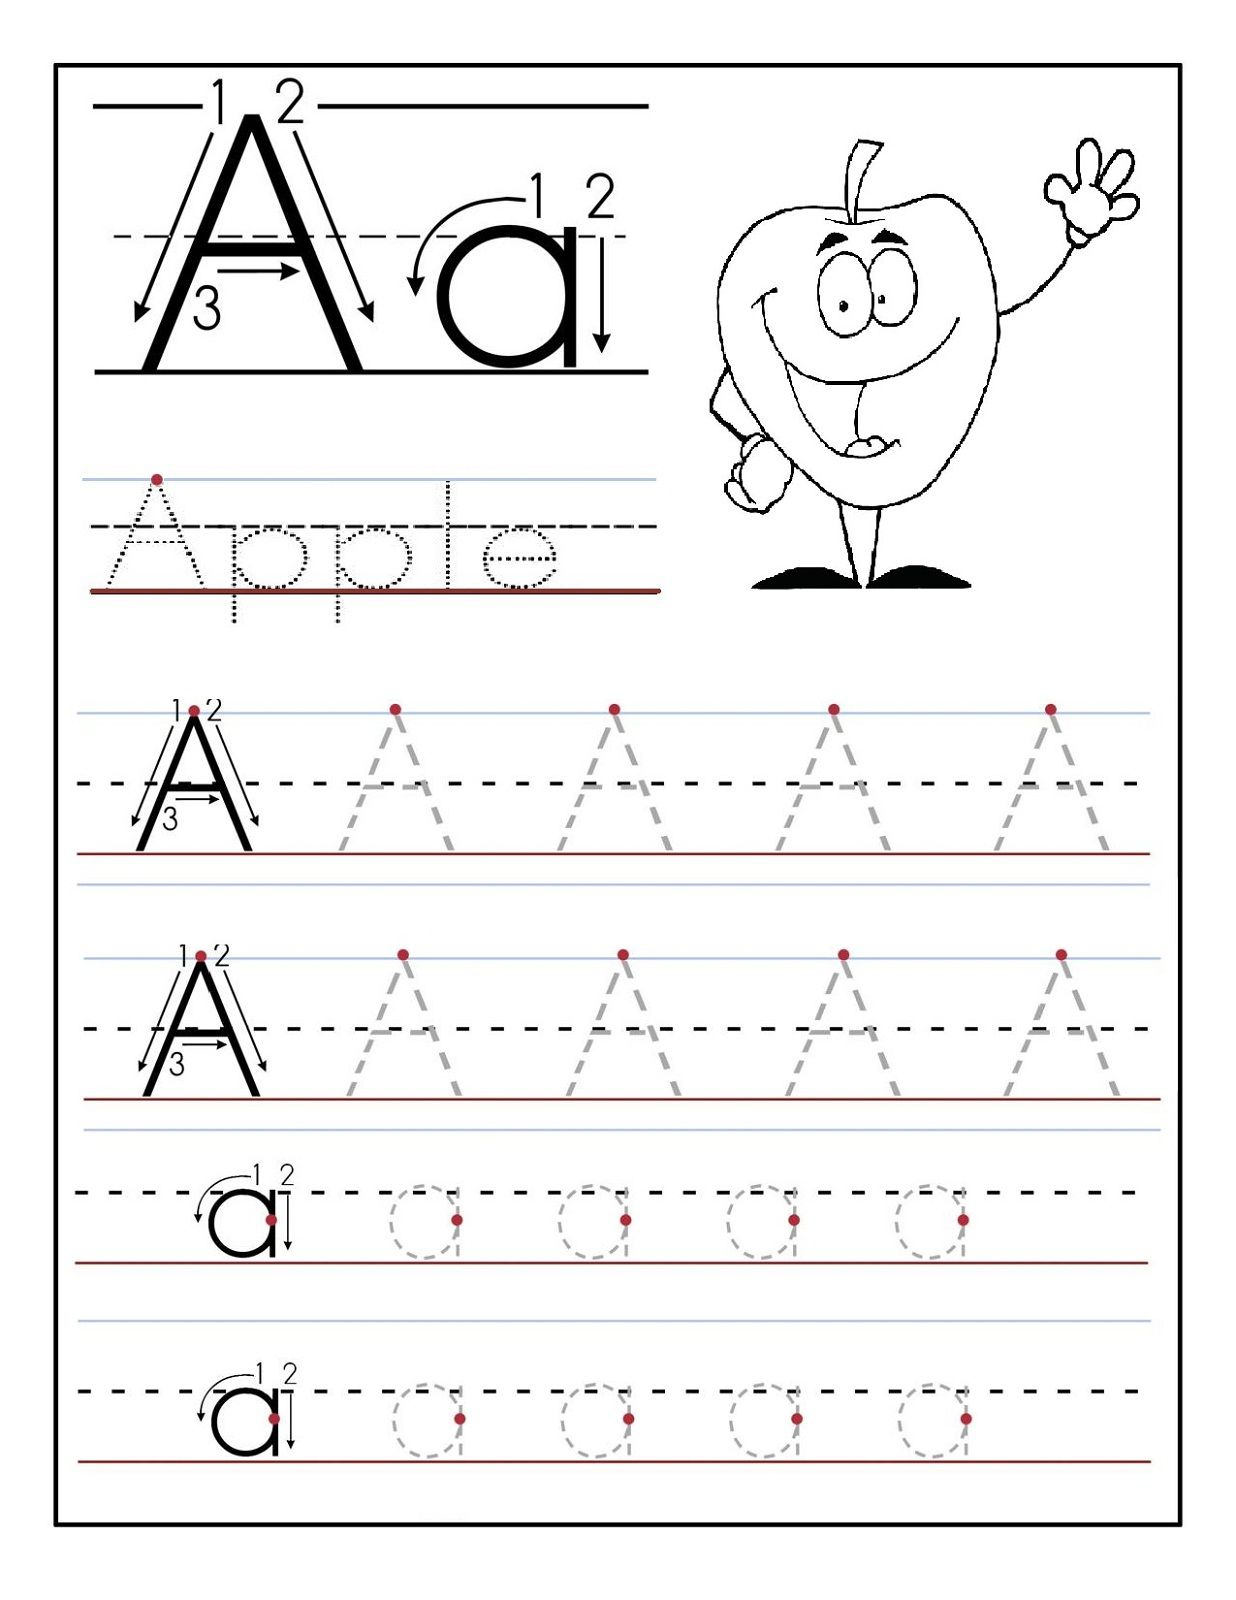 PreK Early Childhood ABC Activities page 1 | abcteach